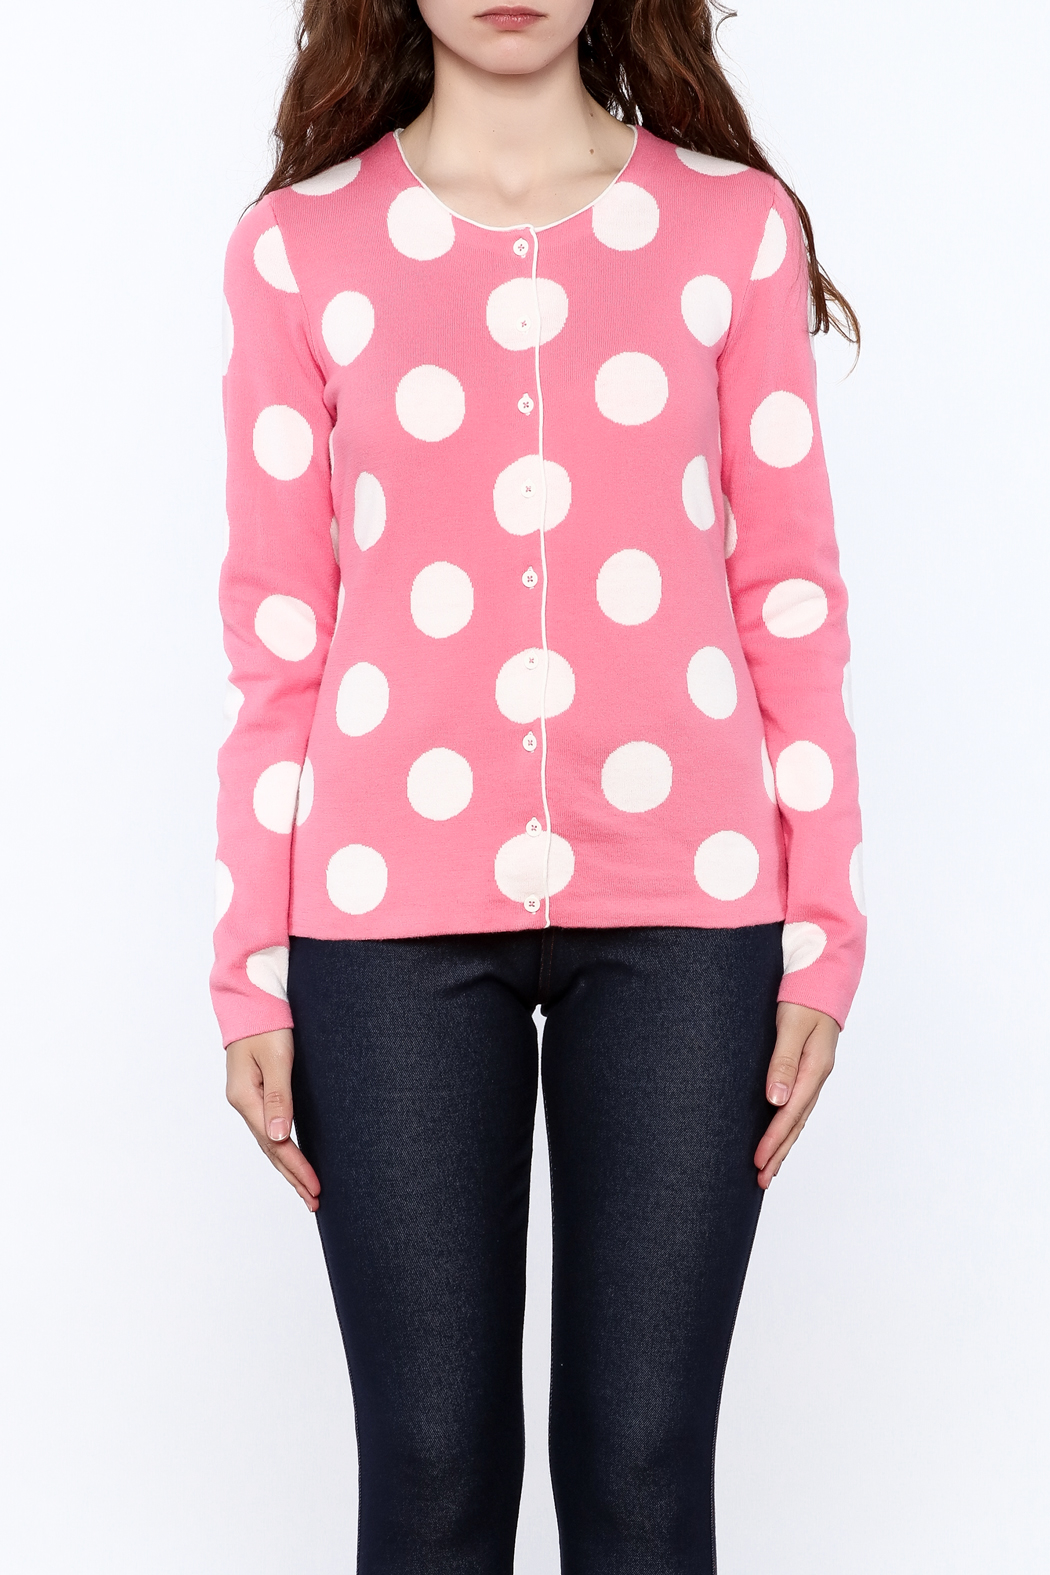 Tyler Boe Pink Button Down Cardigan - Side Cropped Image